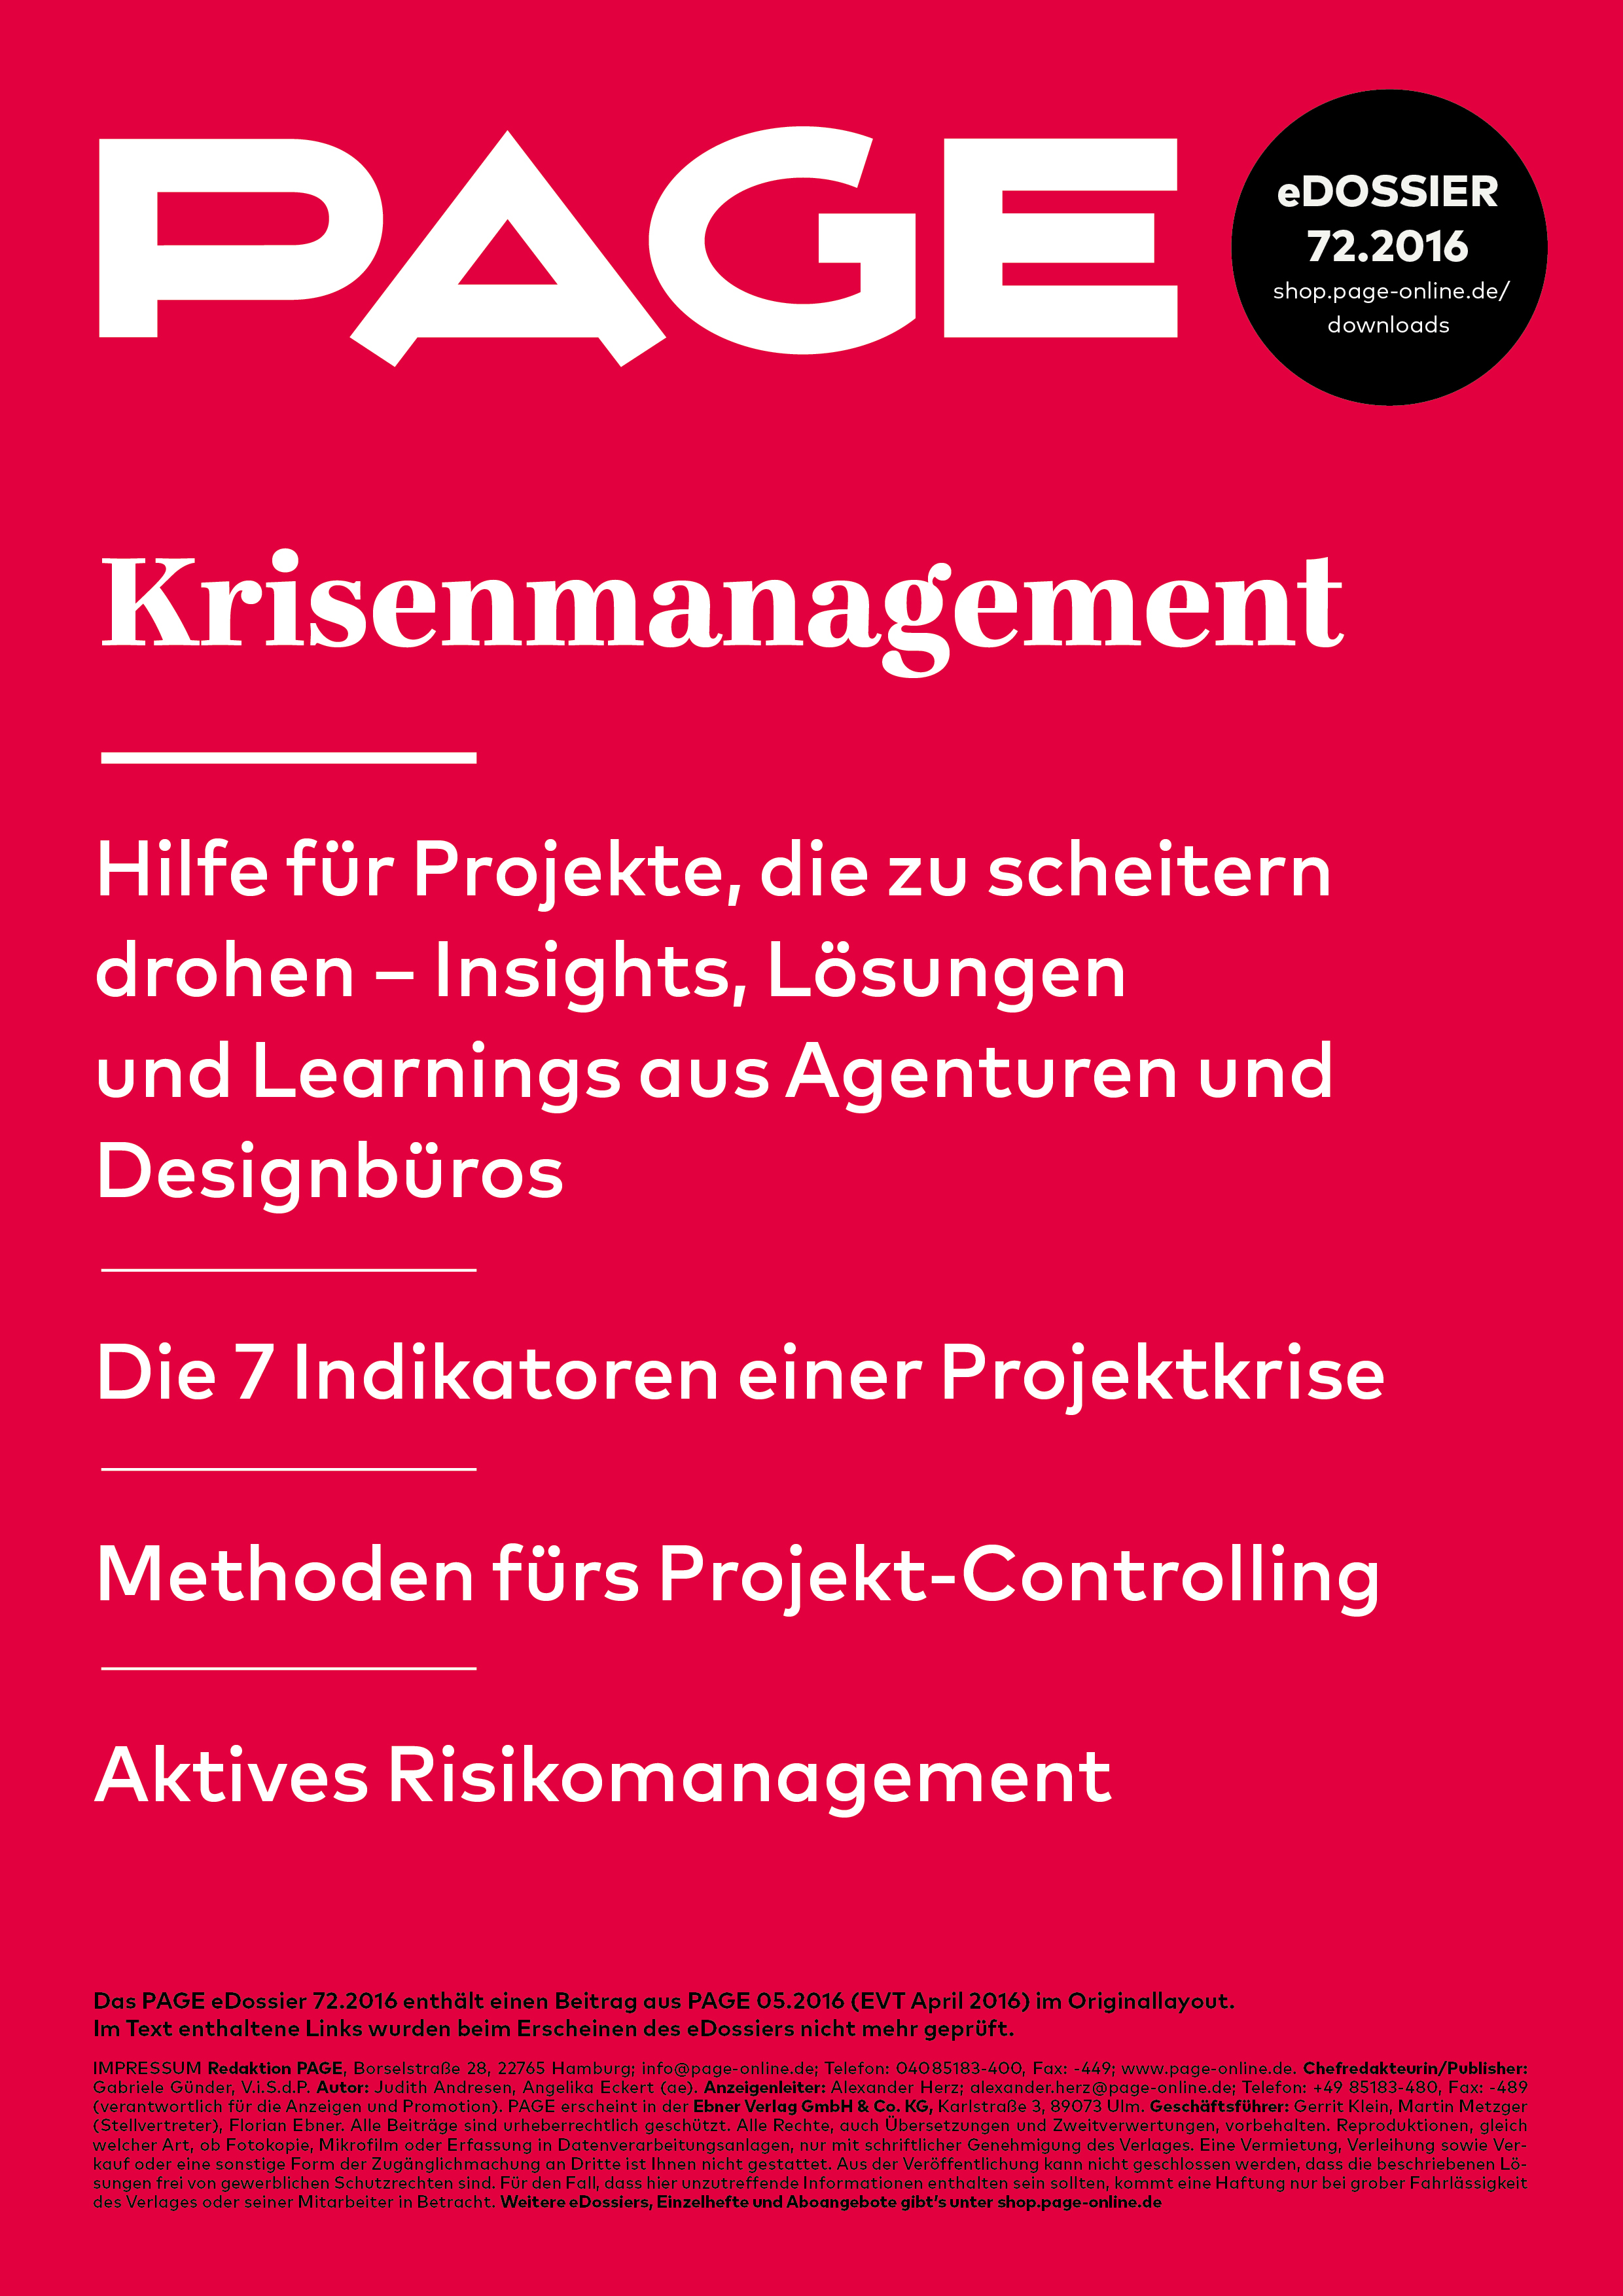 Krisenmanagement, Projektmanagement, Risikomanagement